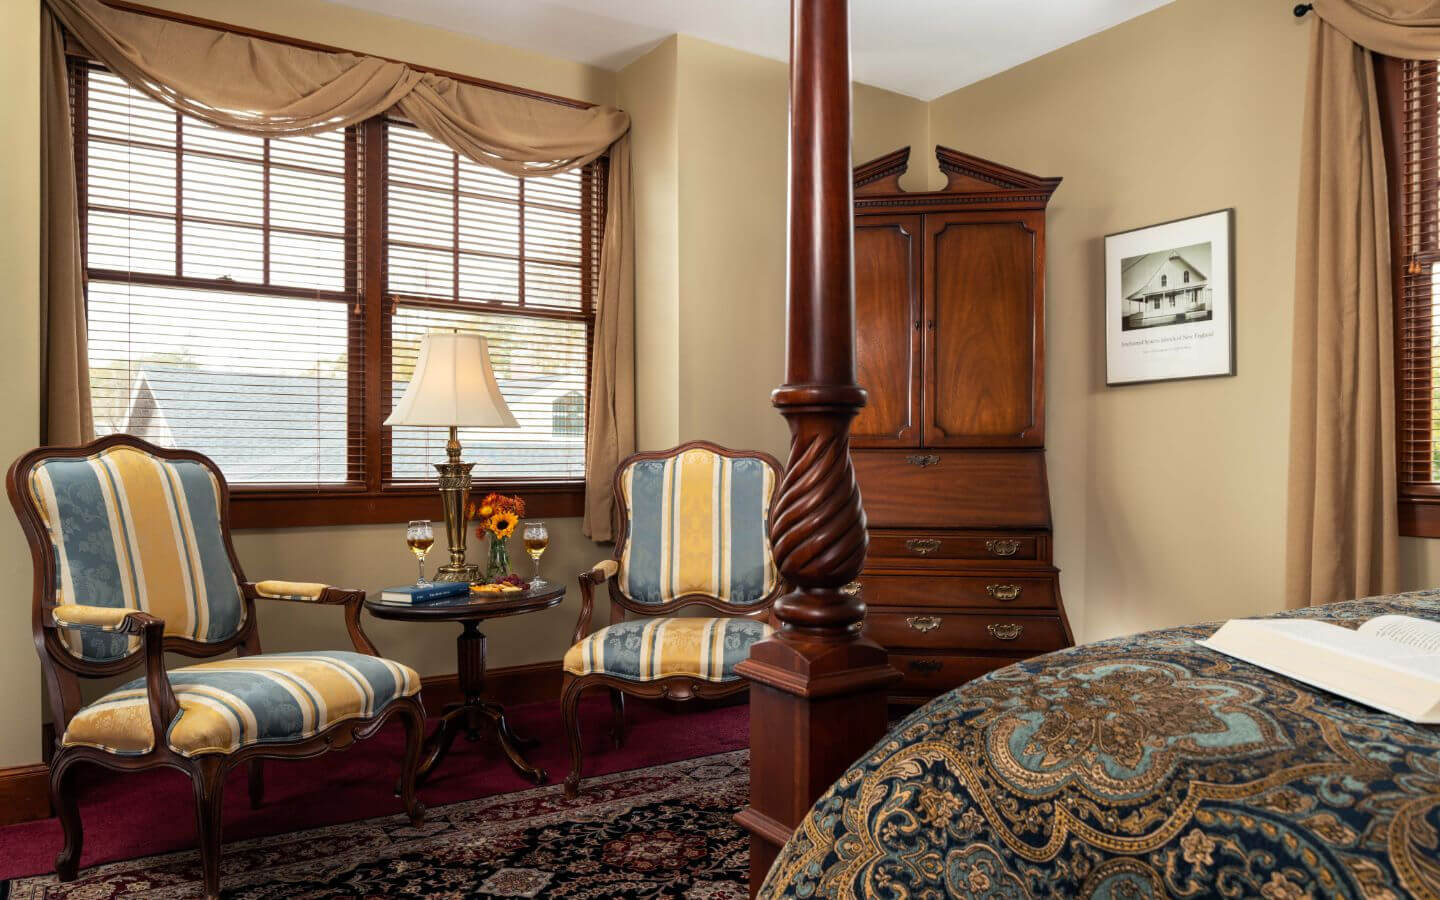 A cozy room at our Falmouth bed and breakfast